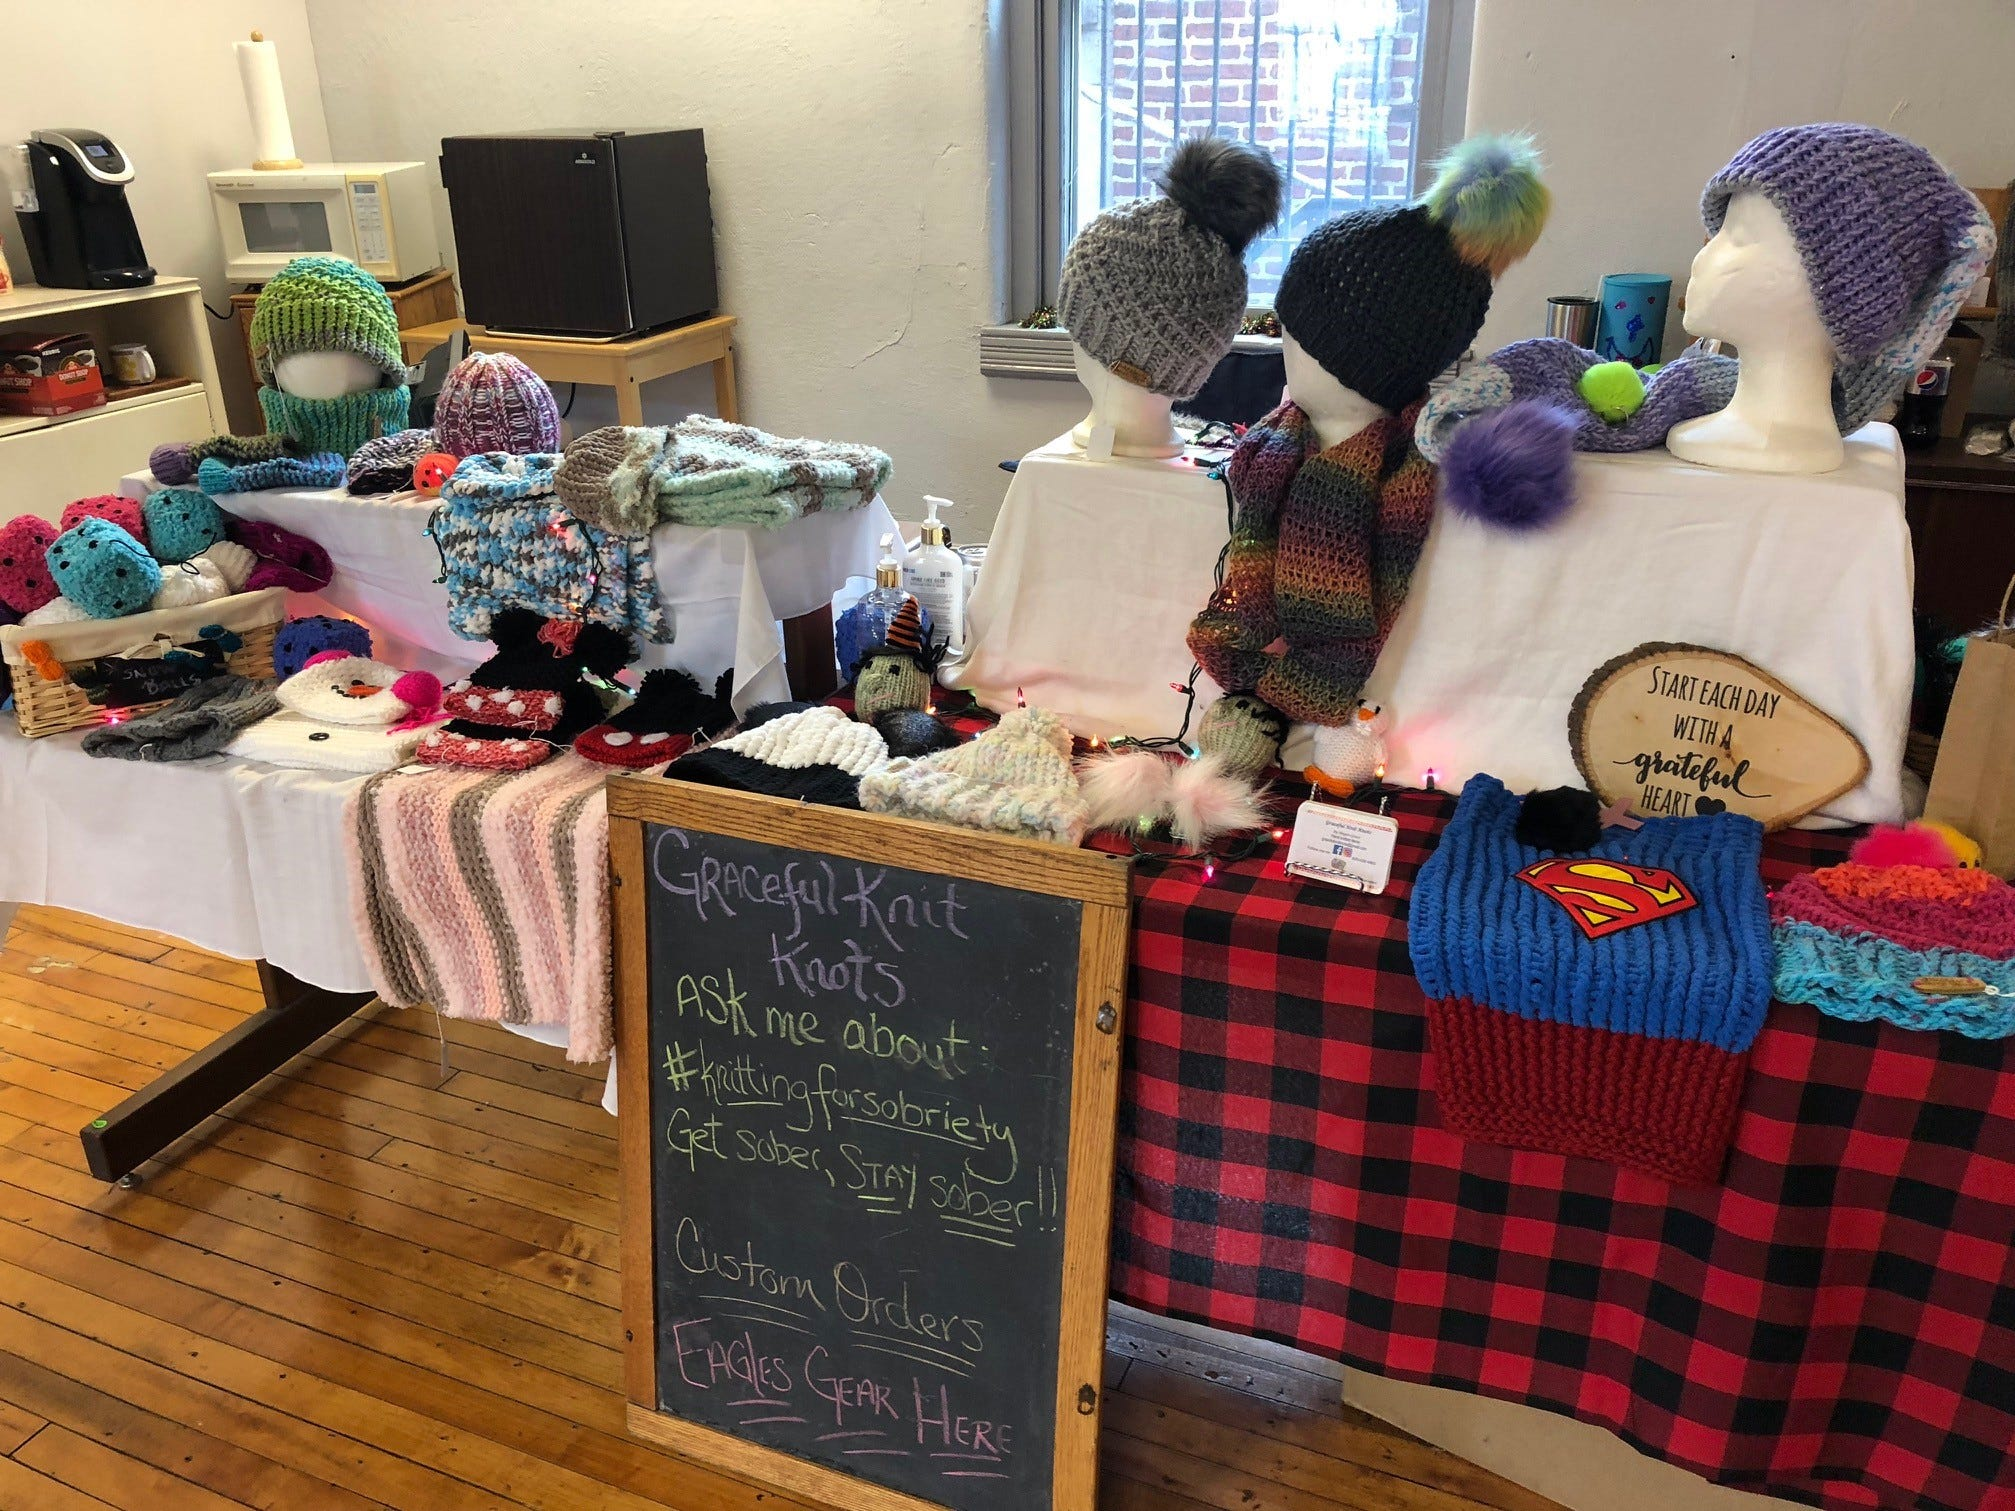 Graceful Knit Knots crafts for sale at a Merchantville pop-up market include pop-up hats, gloves and more.